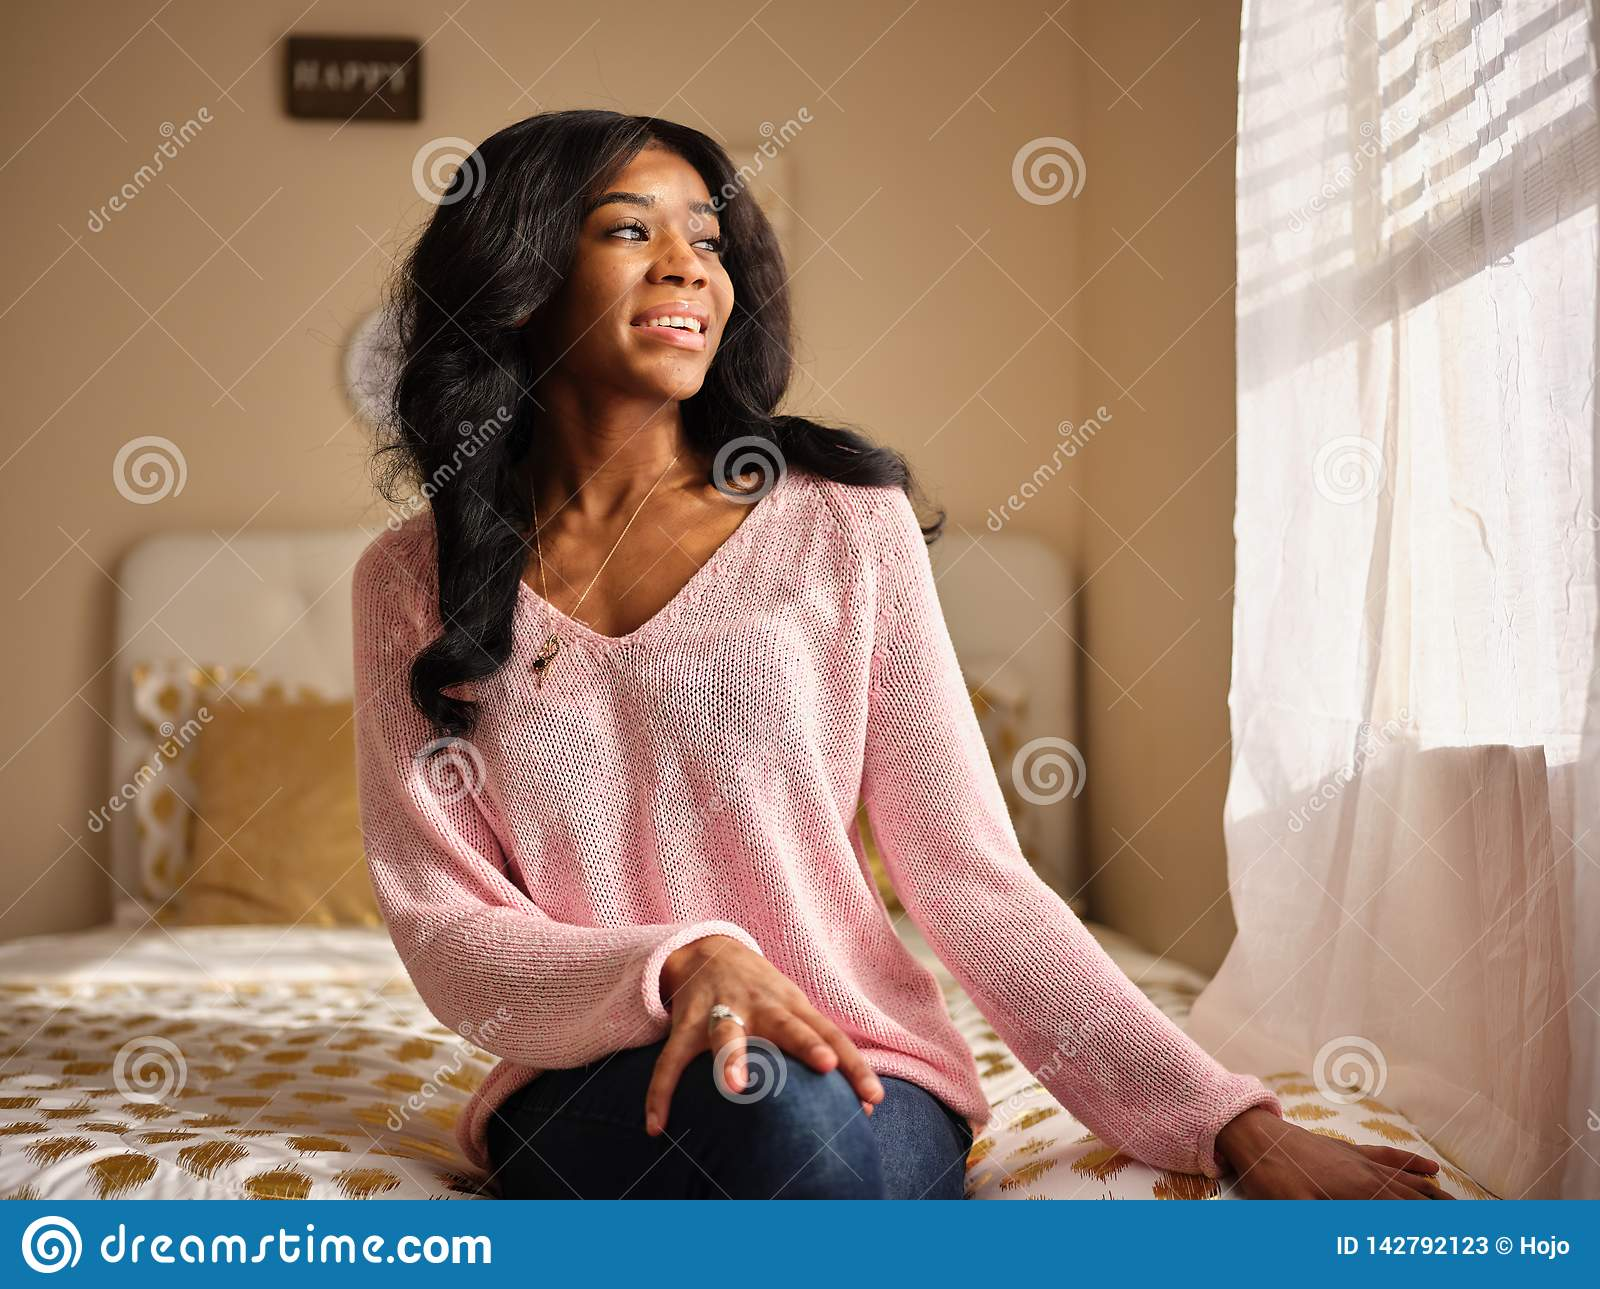 Candid portrait of young african american woman wearing pink sweater